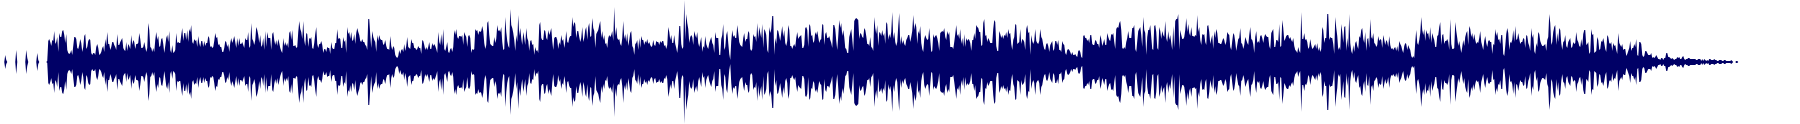 waveform of track #75295